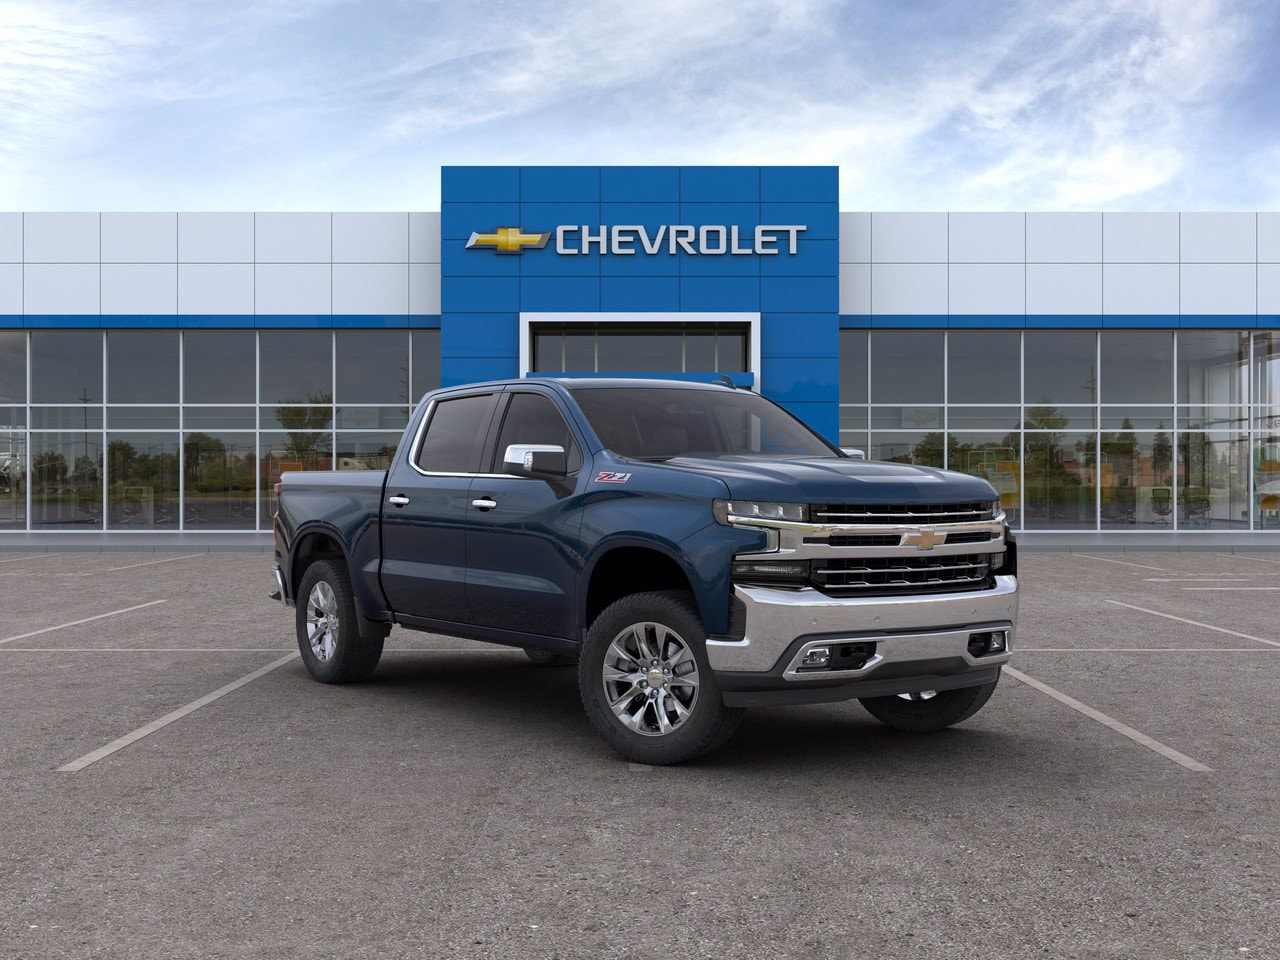 2020 Chevrolet Silverado 1500 Crew Cab 4x4, Pickup #C201434 - photo 1